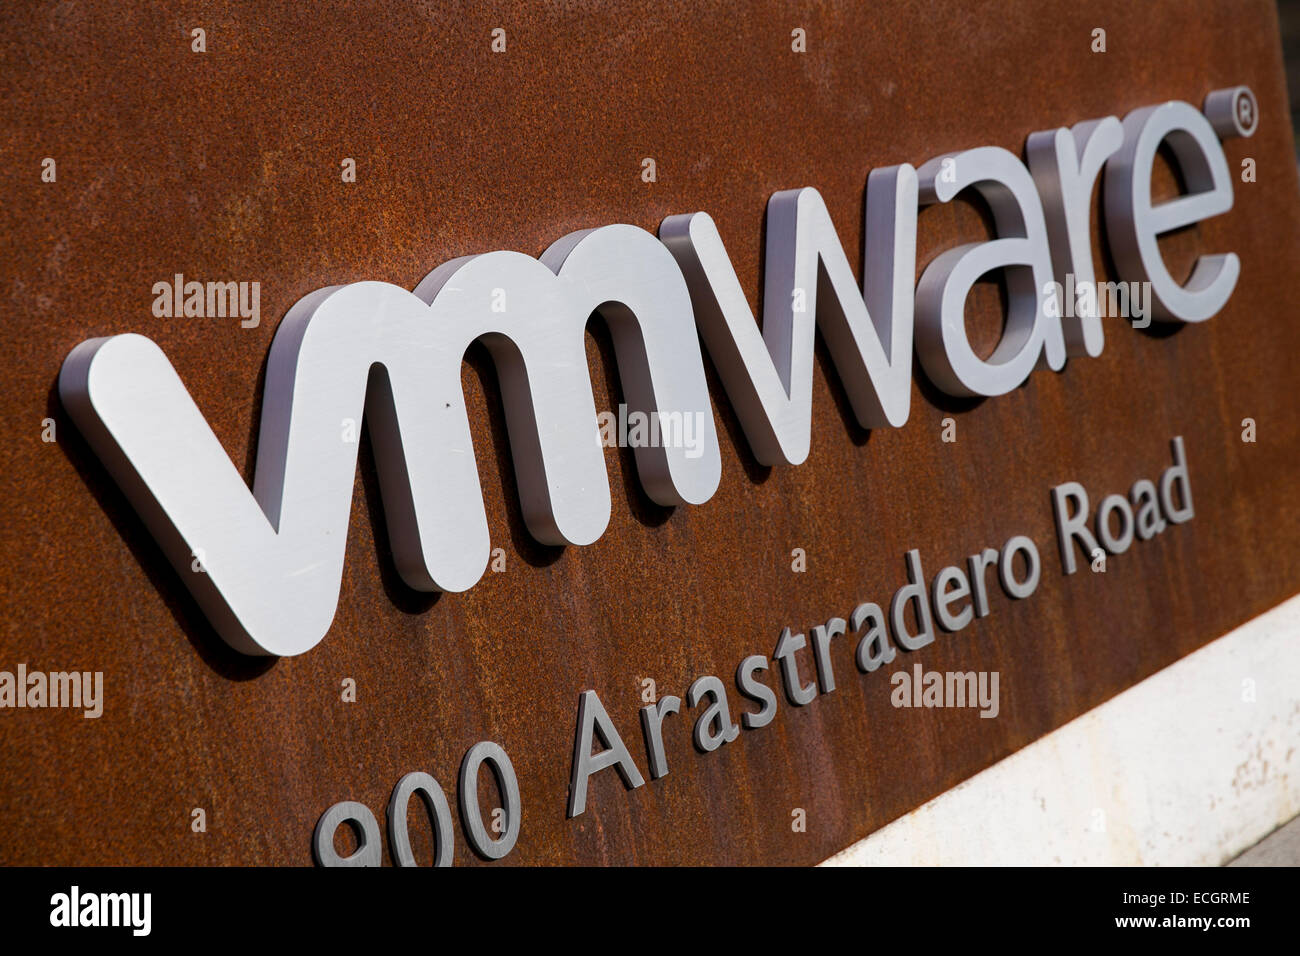 The headquarters of software maker VMware Stock Photo: 76587182 - Alamy